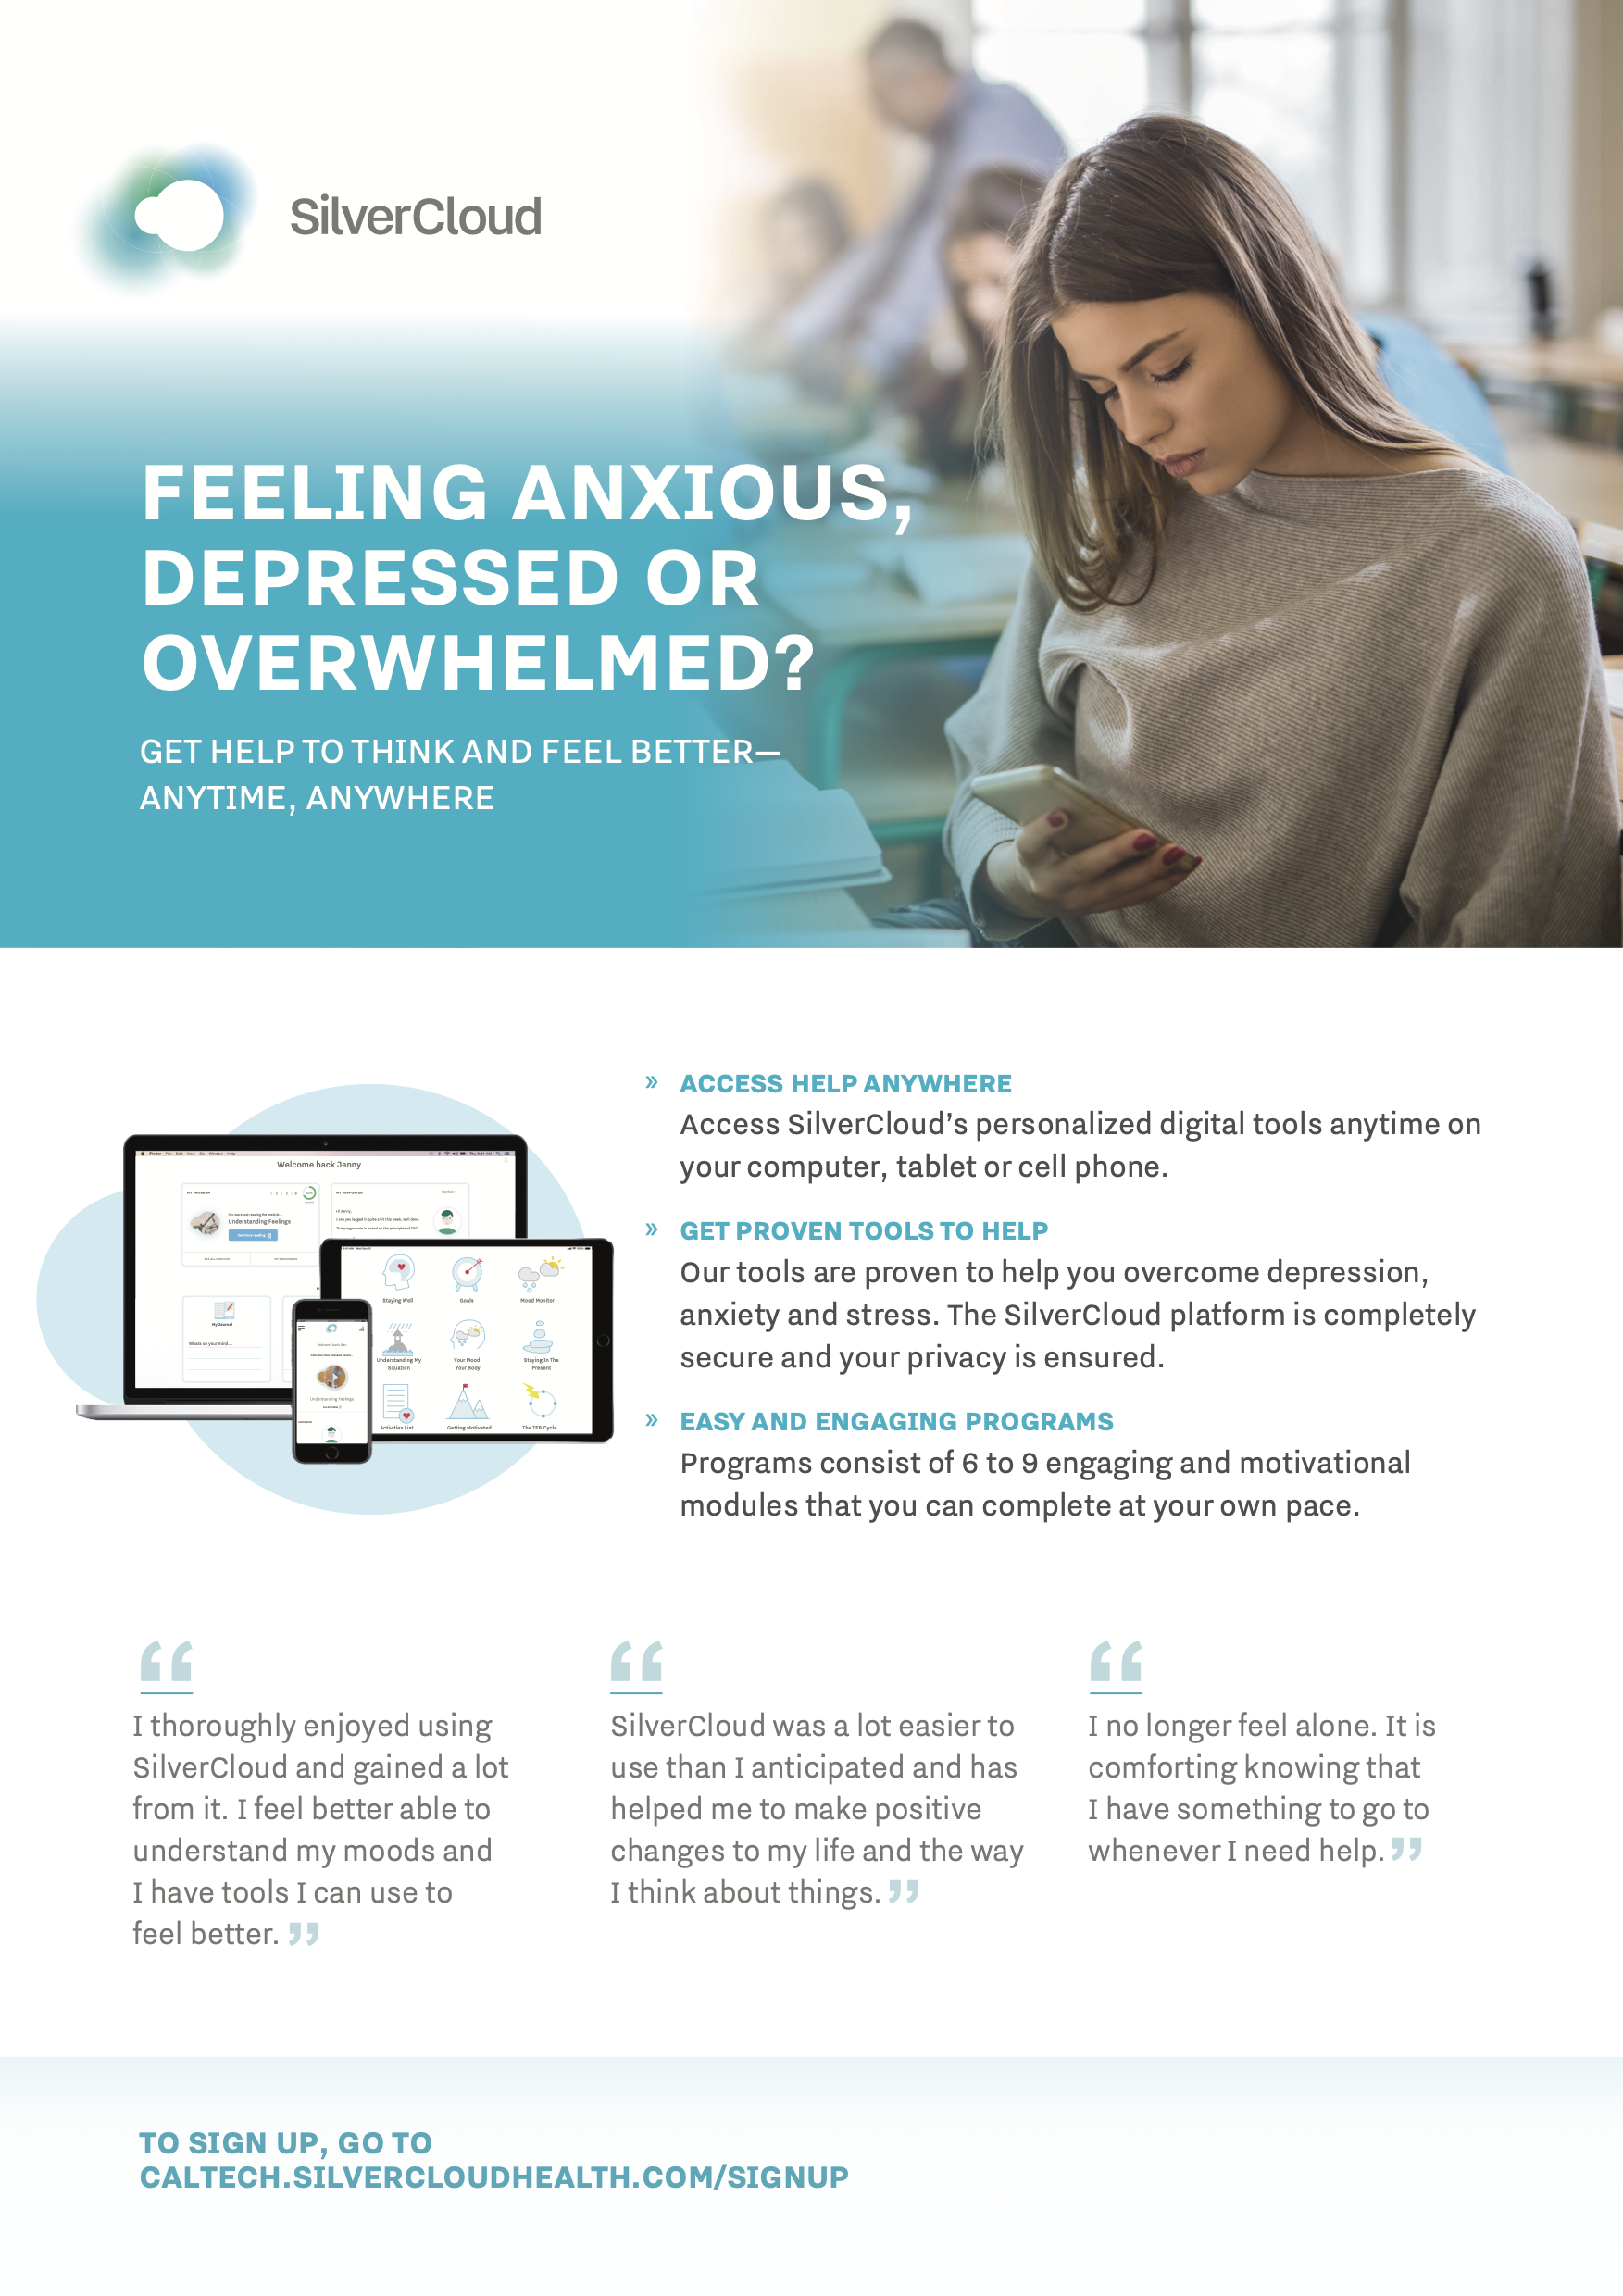 Feeling anxious, depressed, or overwhelmed? Try SilverCloud!